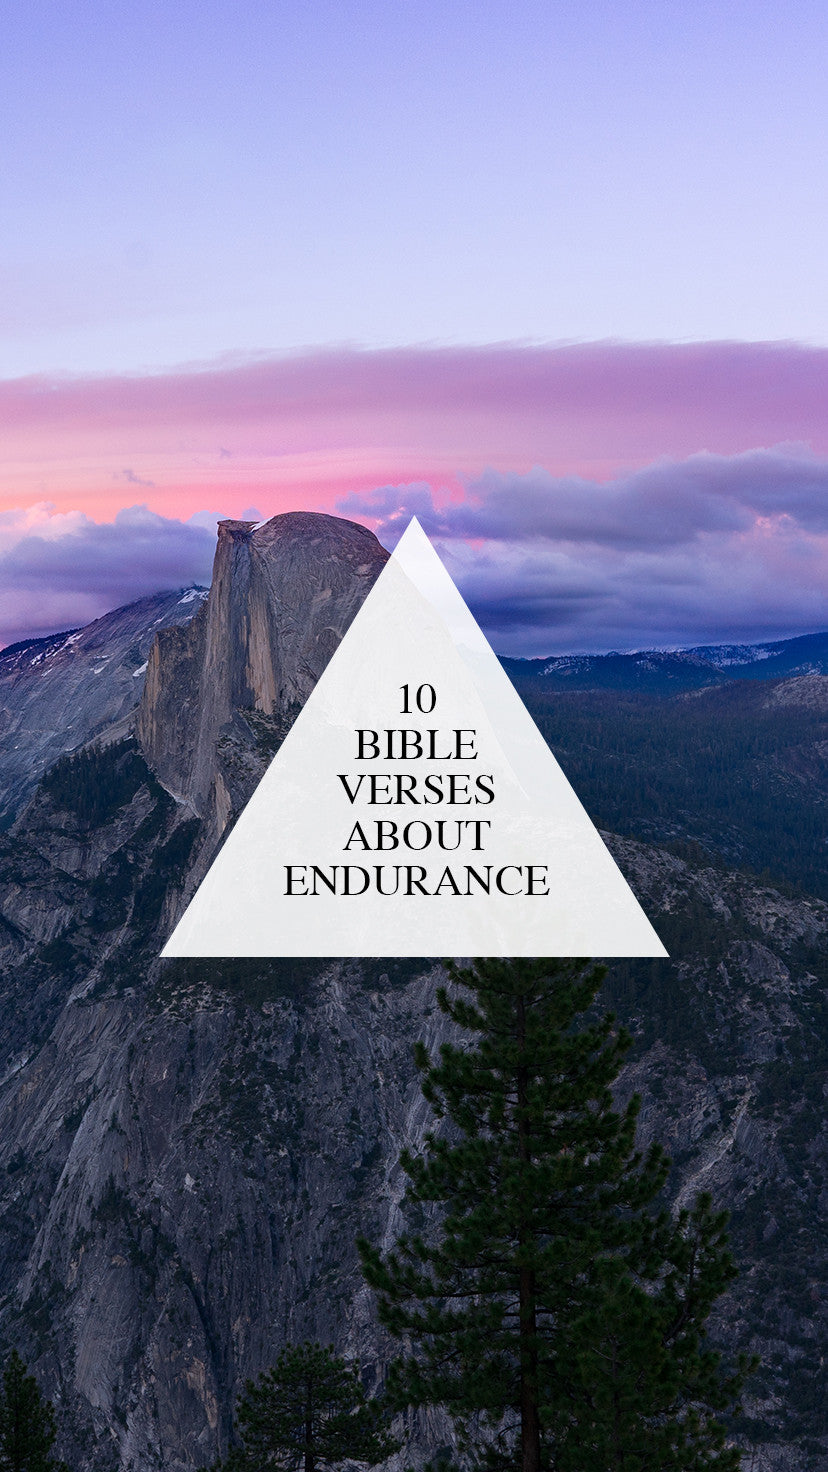 10 Verses About Endurance